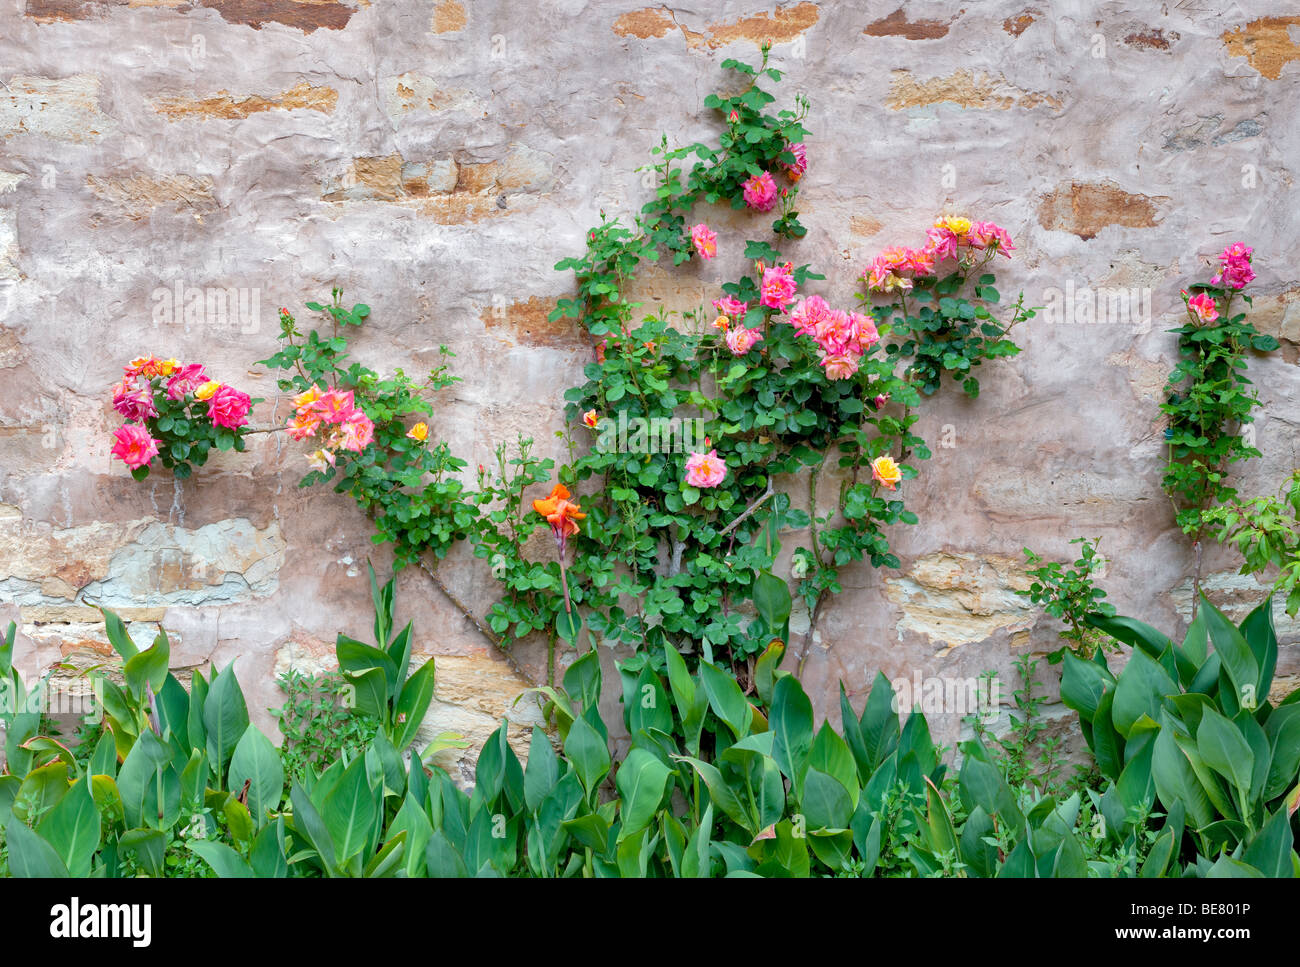 Gardens with roses at the Carmel Mission. Carmel by the Sea, California. - Stock Image